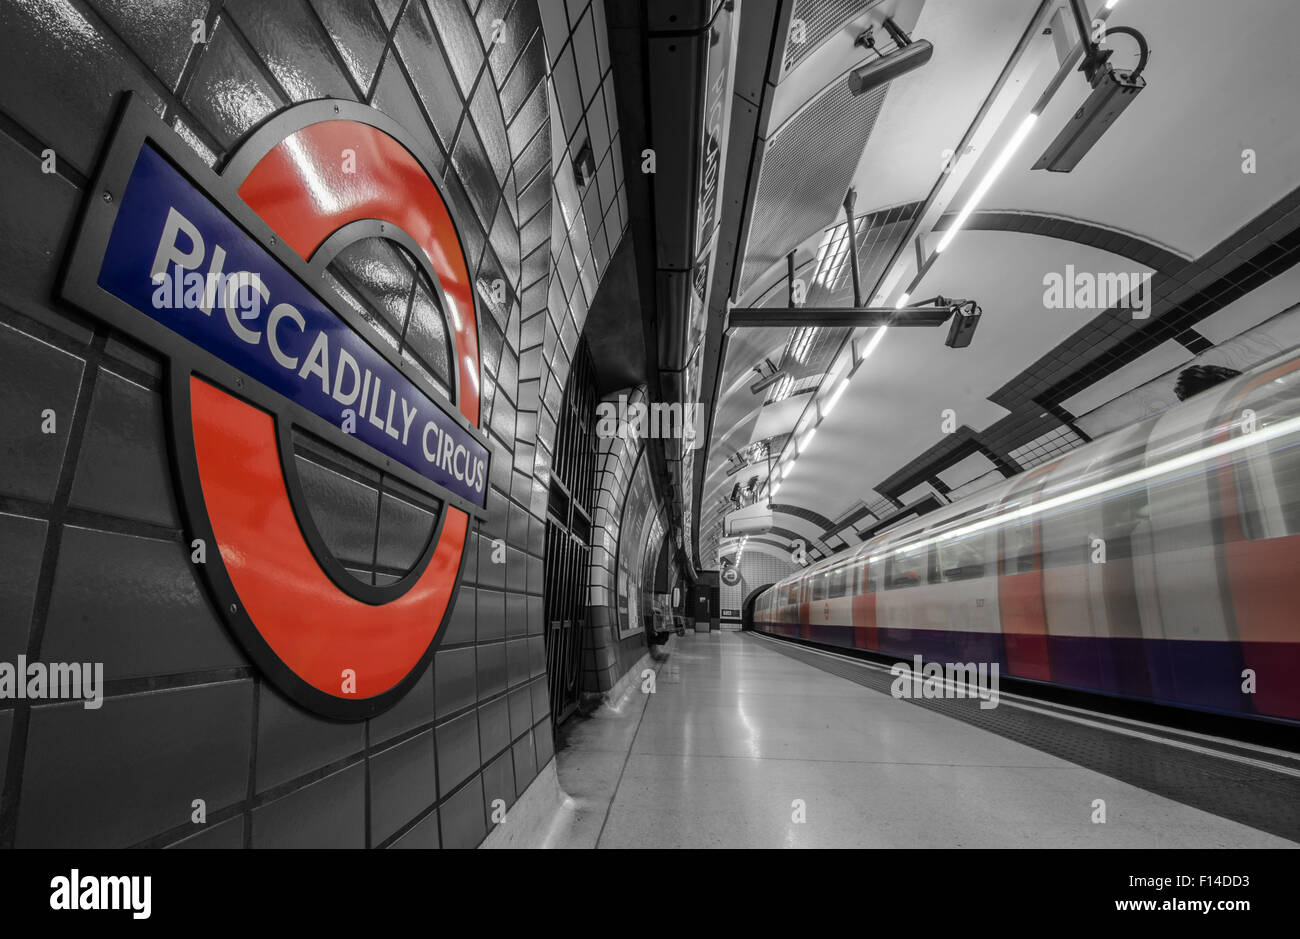 The subway of London with selective color highlighting some details. - Stock Image